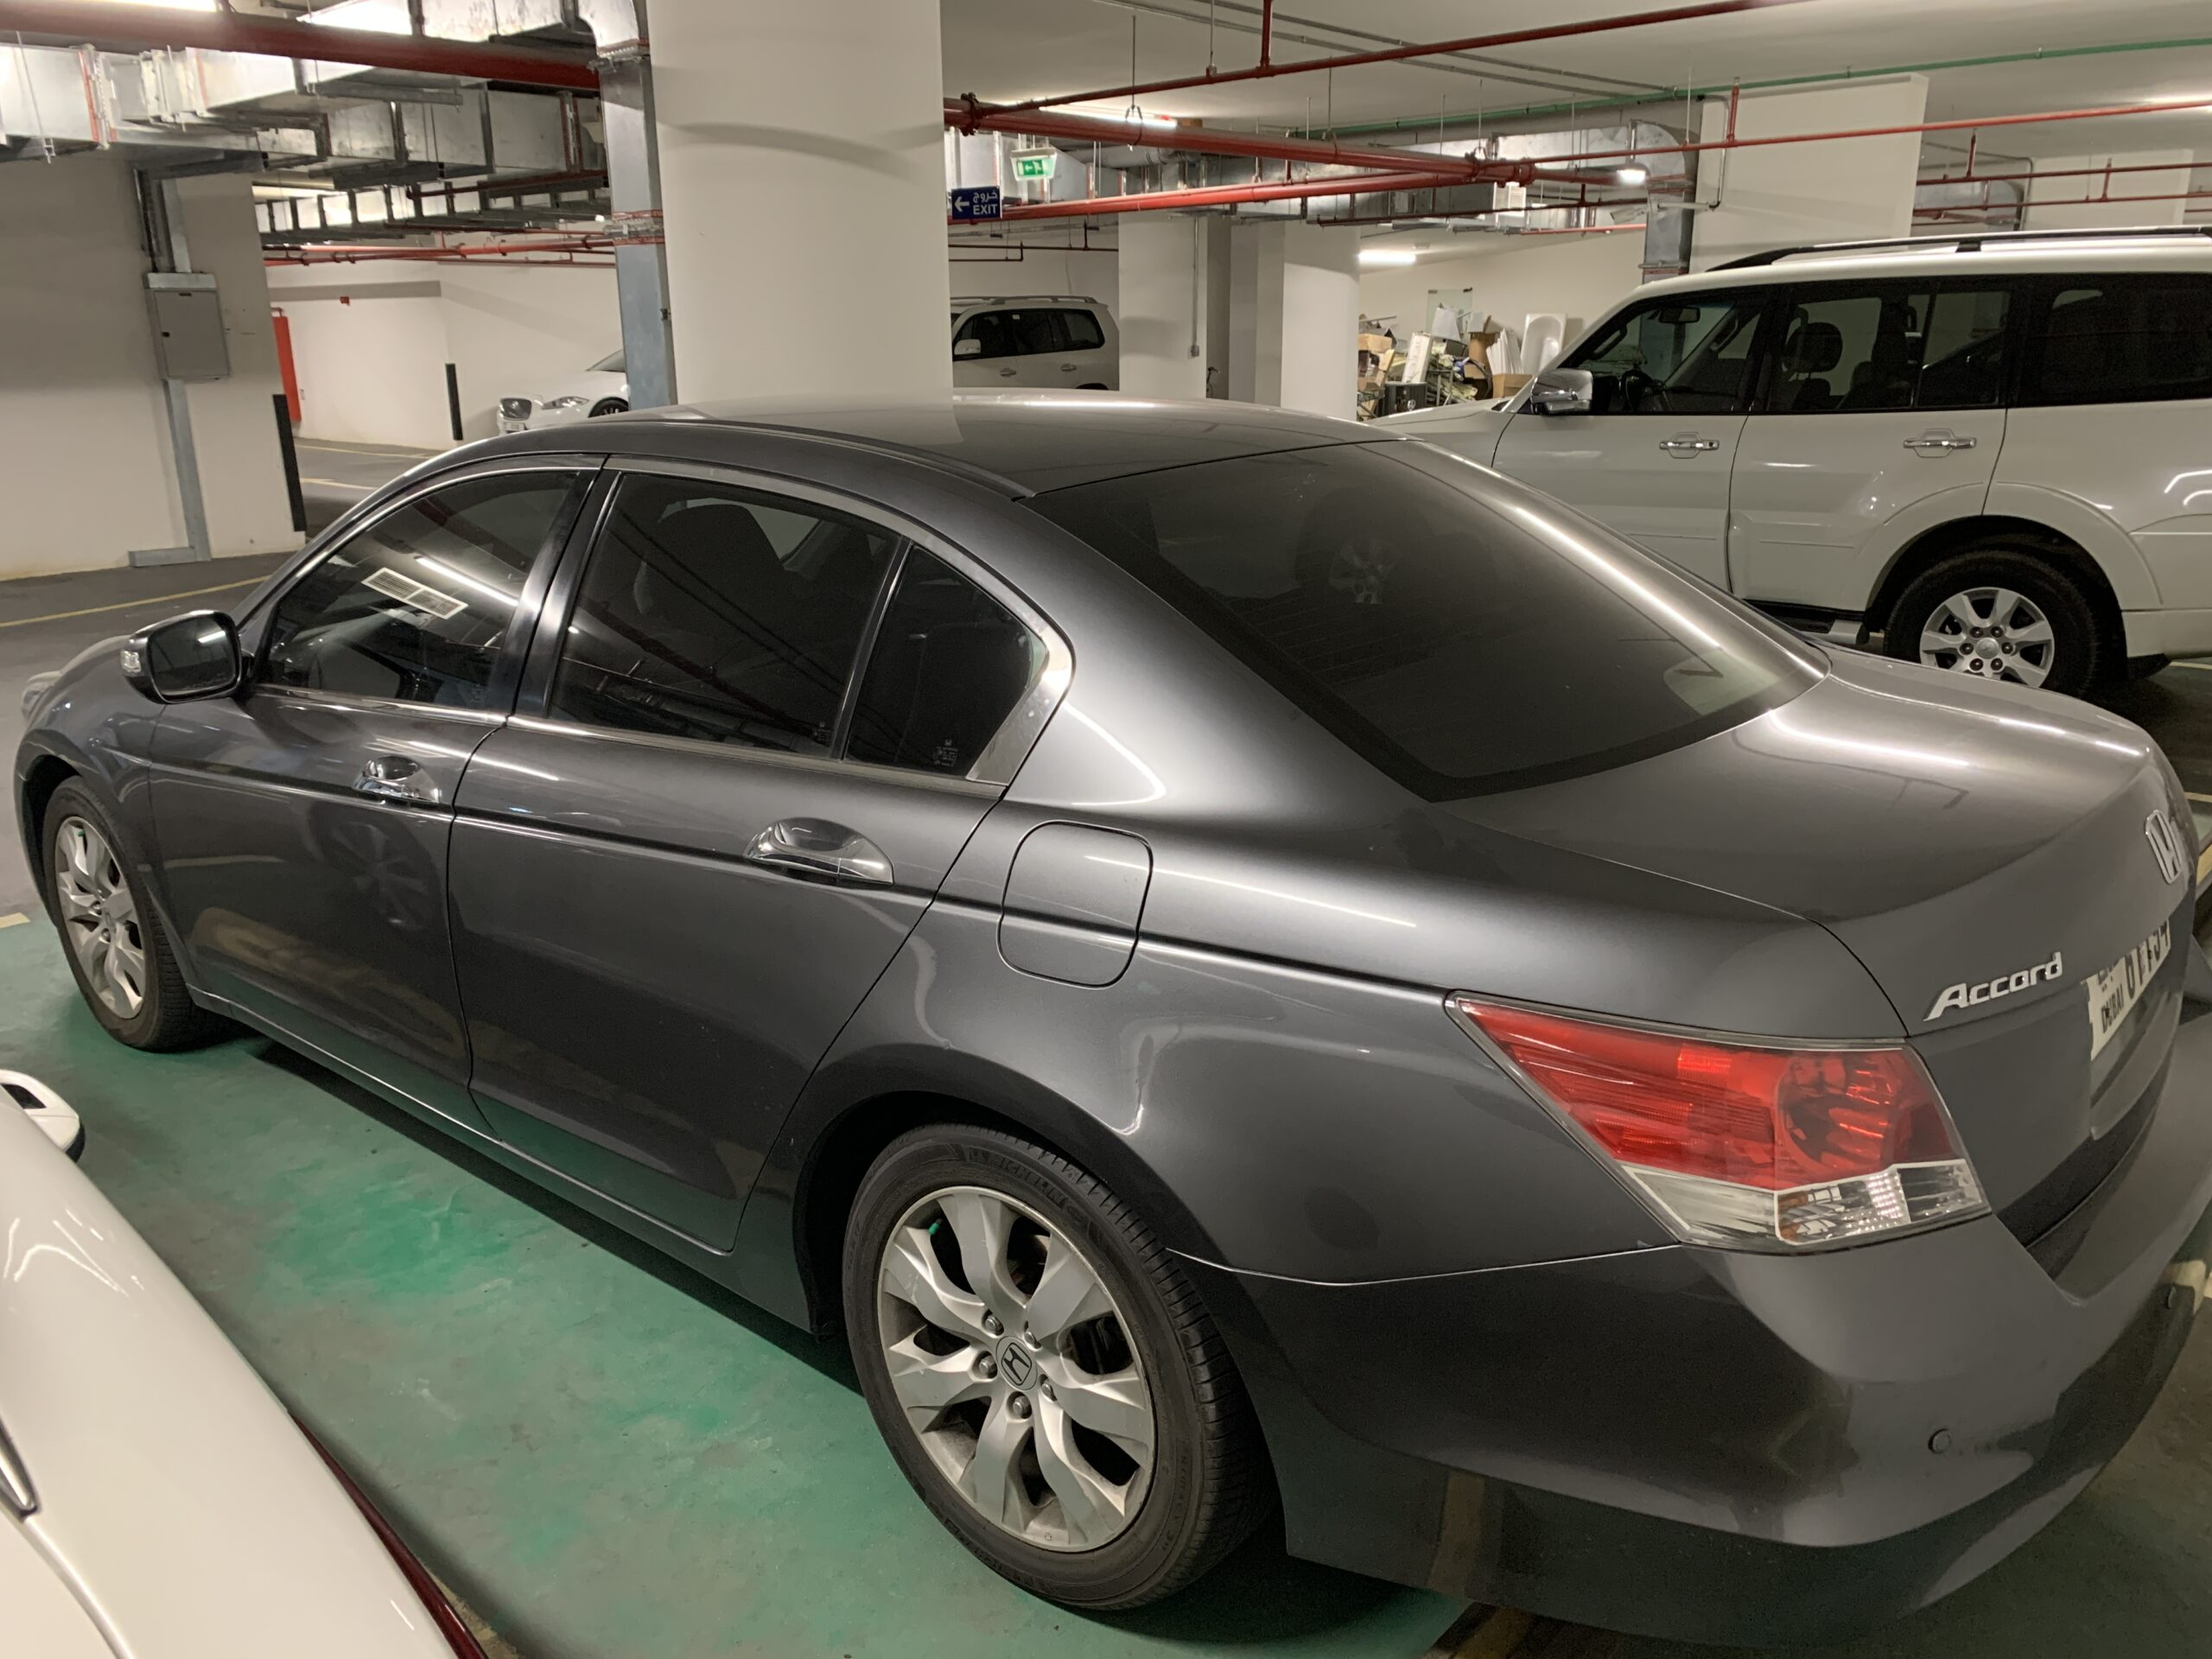 Dealer serviced 2008 Accord for Sales - Image 1